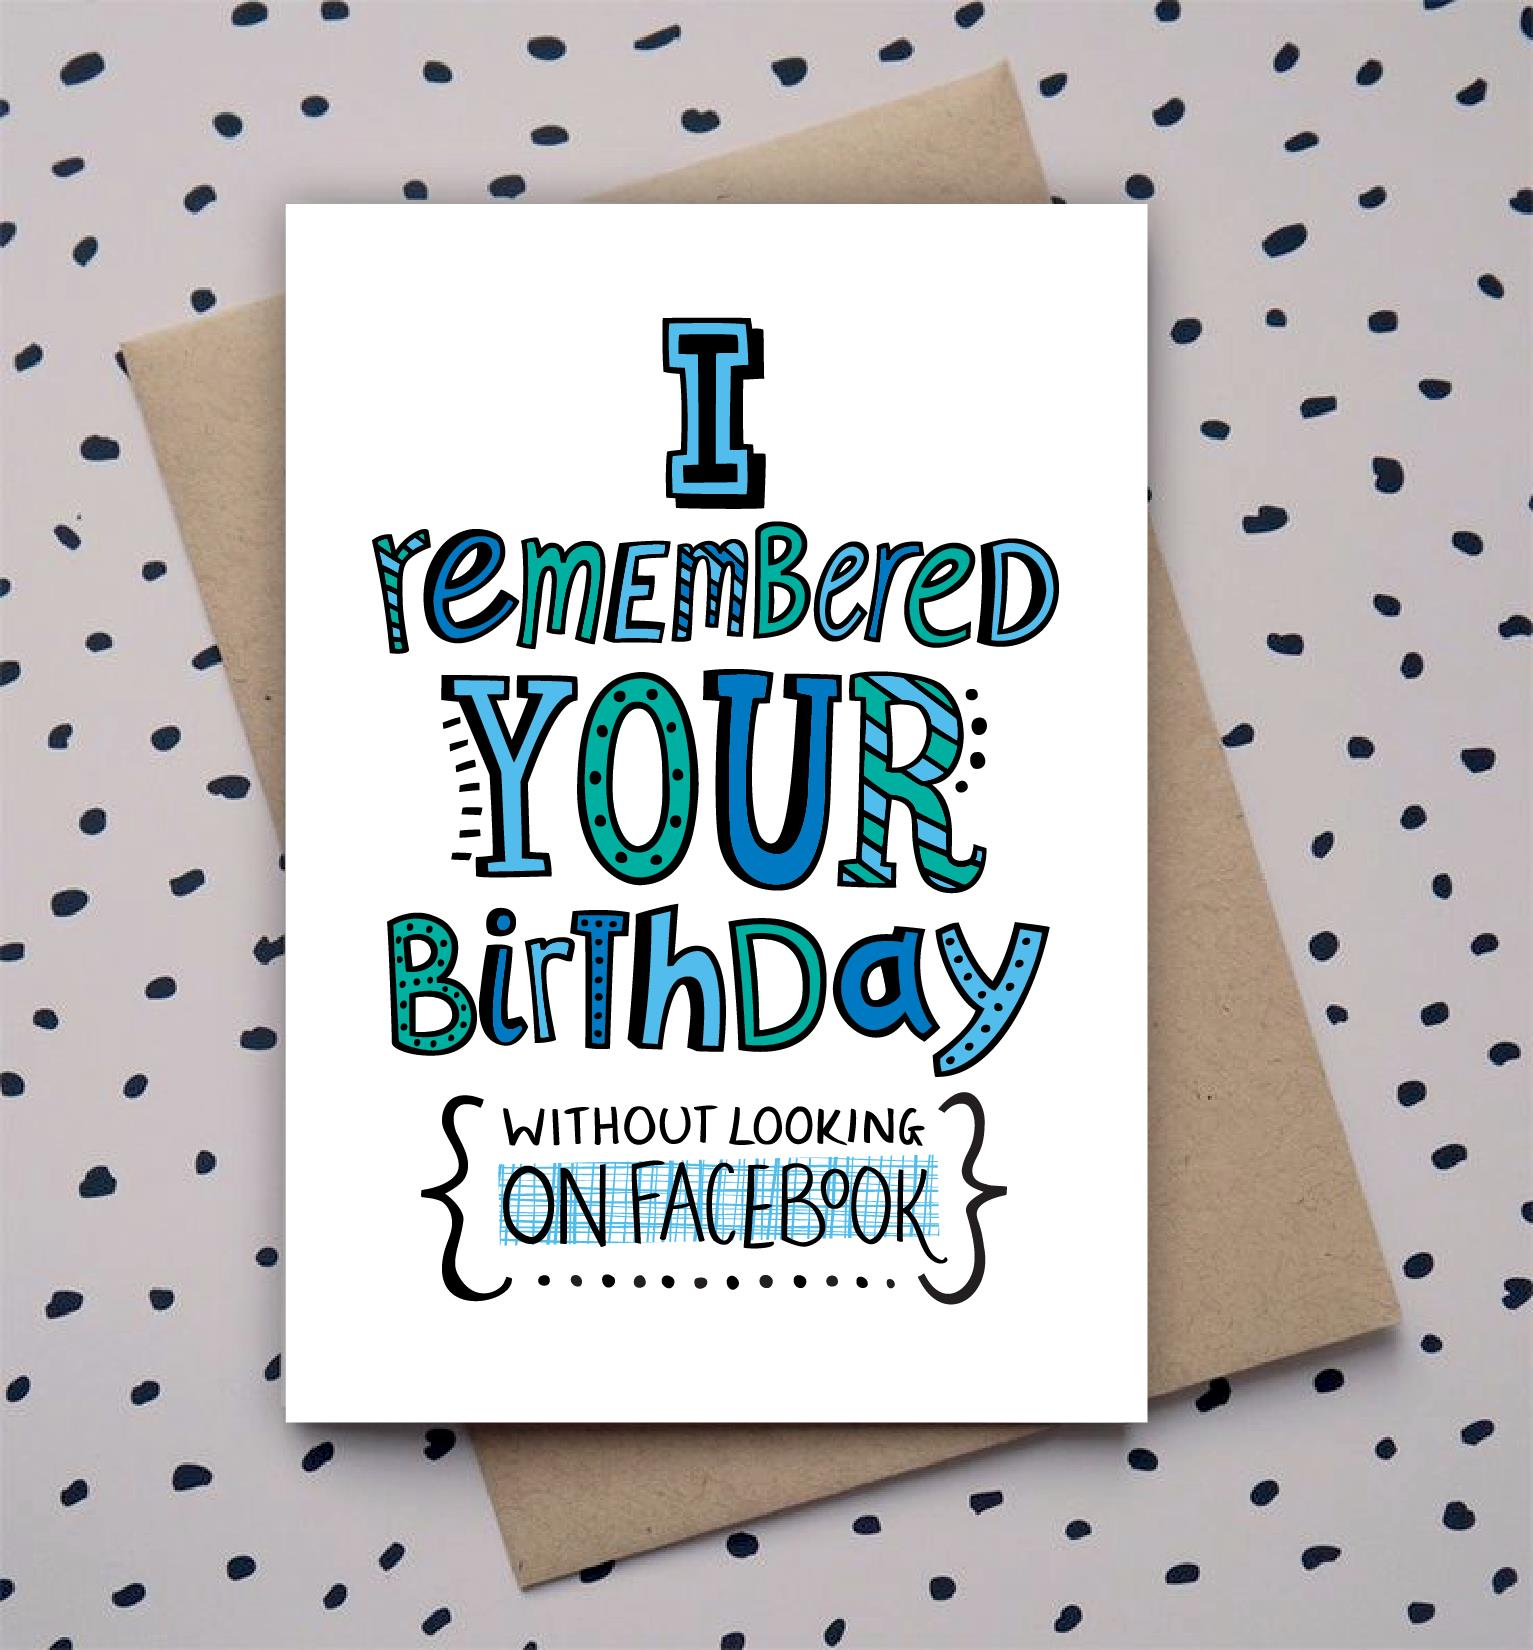 ideas for drawing birthday cards ; Drawing-Birthday-Card-Ideas-is-one-of-the-best-idea-for-you-to-make-your-own-birthday-Card-design-1